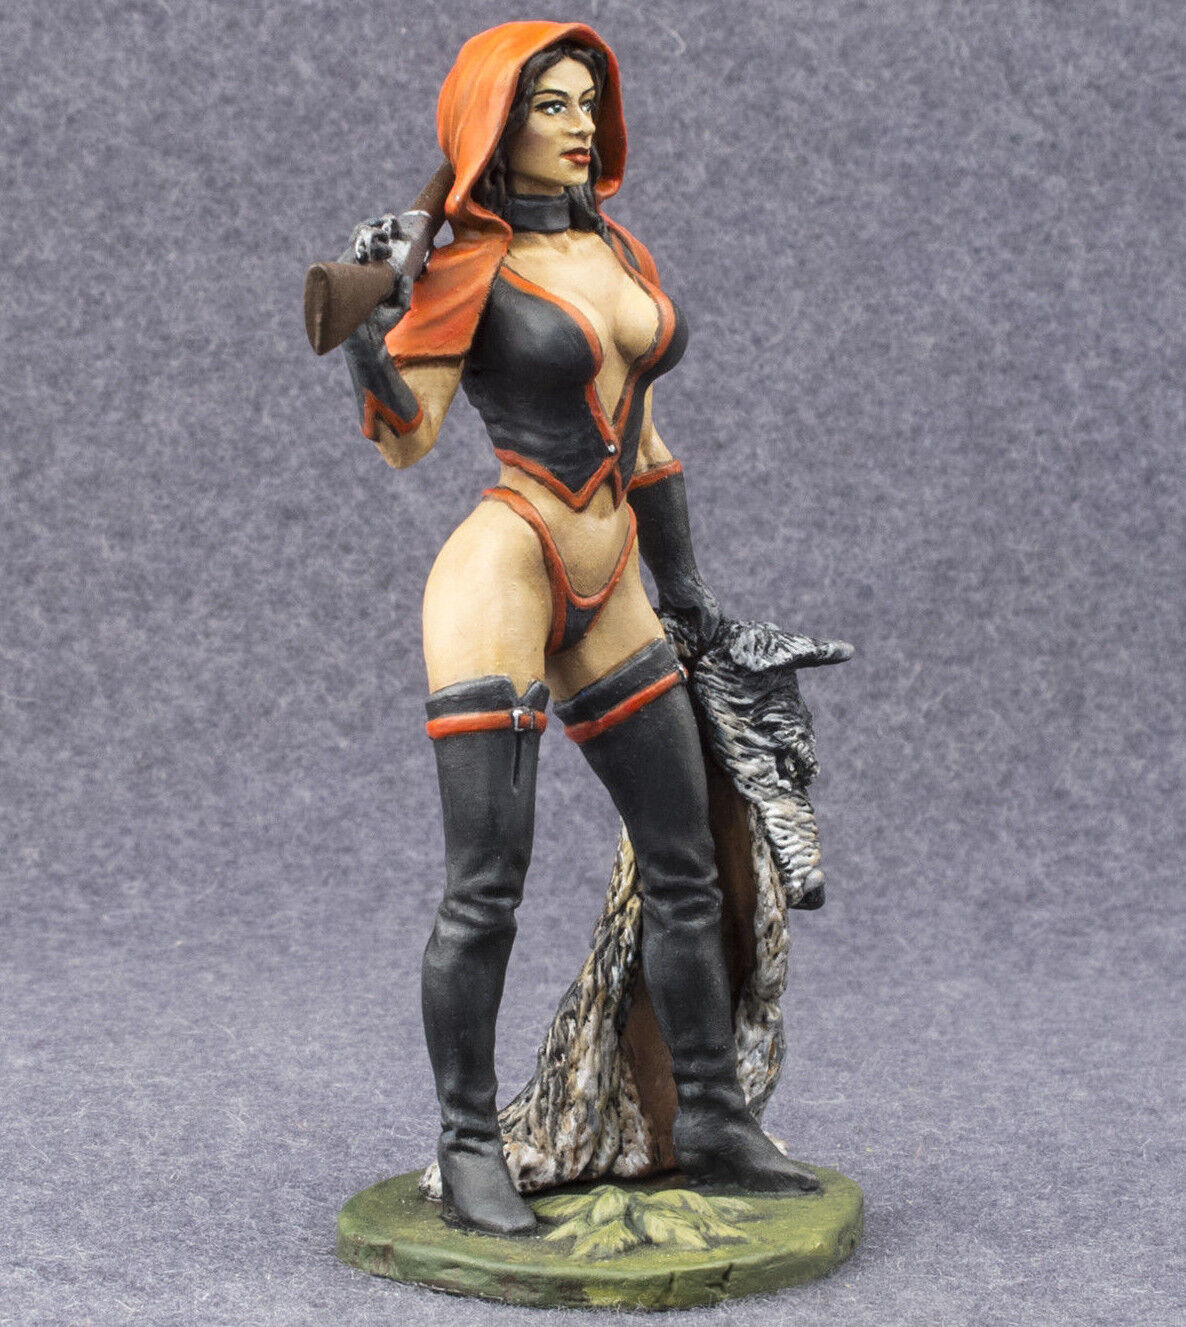 Painted Toy Soldiers 75mm Red Riding Hood 1 24 Woman Figure Hunter Sexy Girl